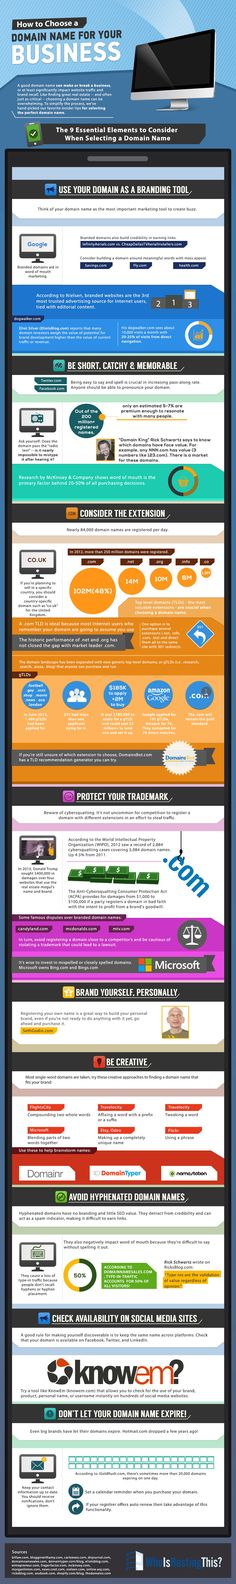 How to Choose a Domain Name - Infographic guide for small business owners and startups. For more tips search #mmmsocialmedia